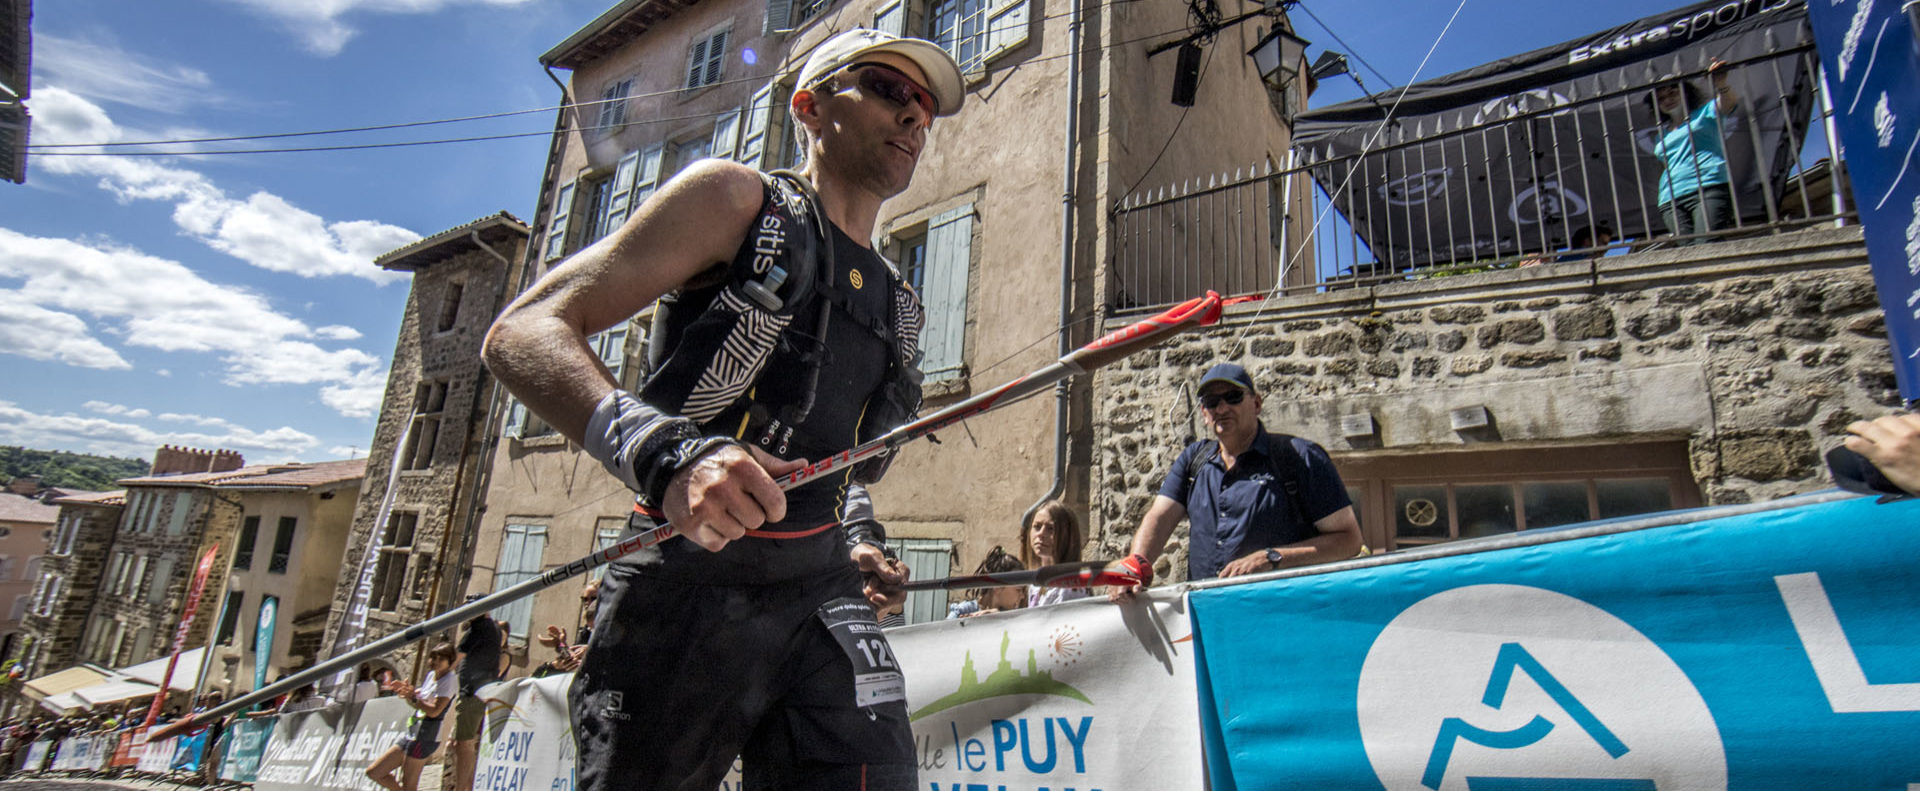 Grand_Trail_Saint_Jacques_2019_Gilles_Reboisson_Extrasports (23)